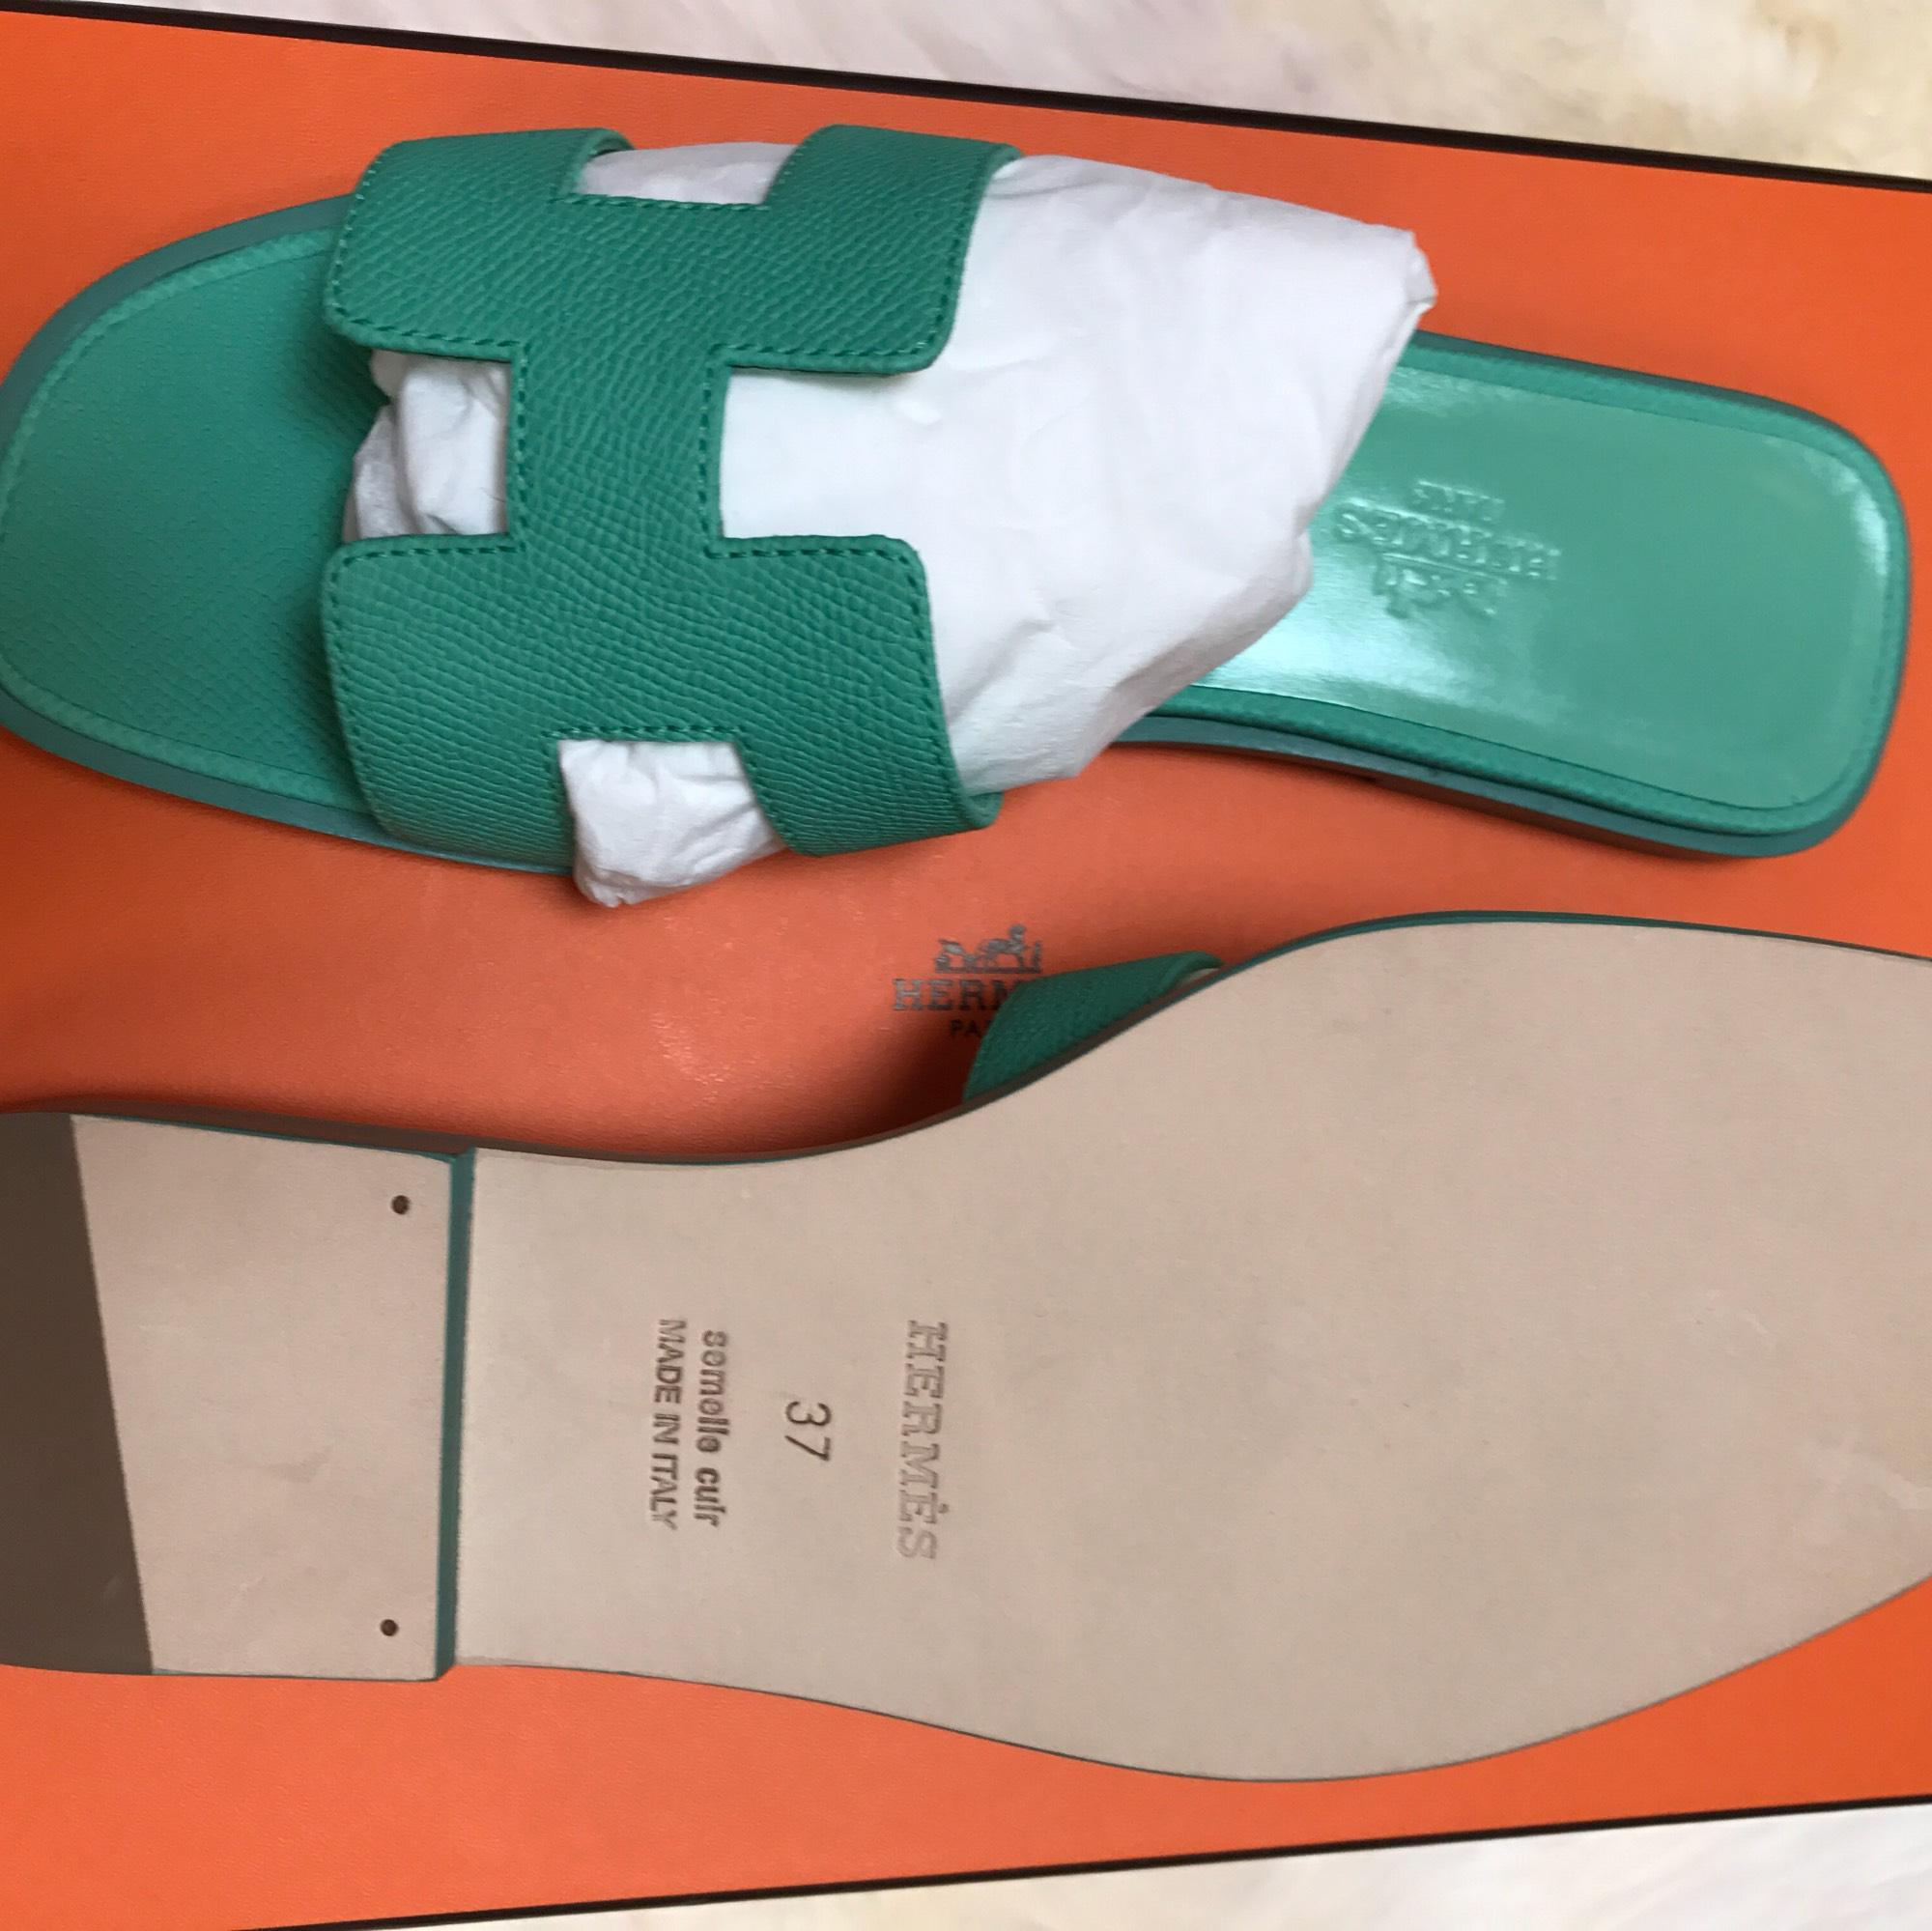 4b7651a4be4c ... Hermès Green Green Green Sandals Size US 7 Regular (M